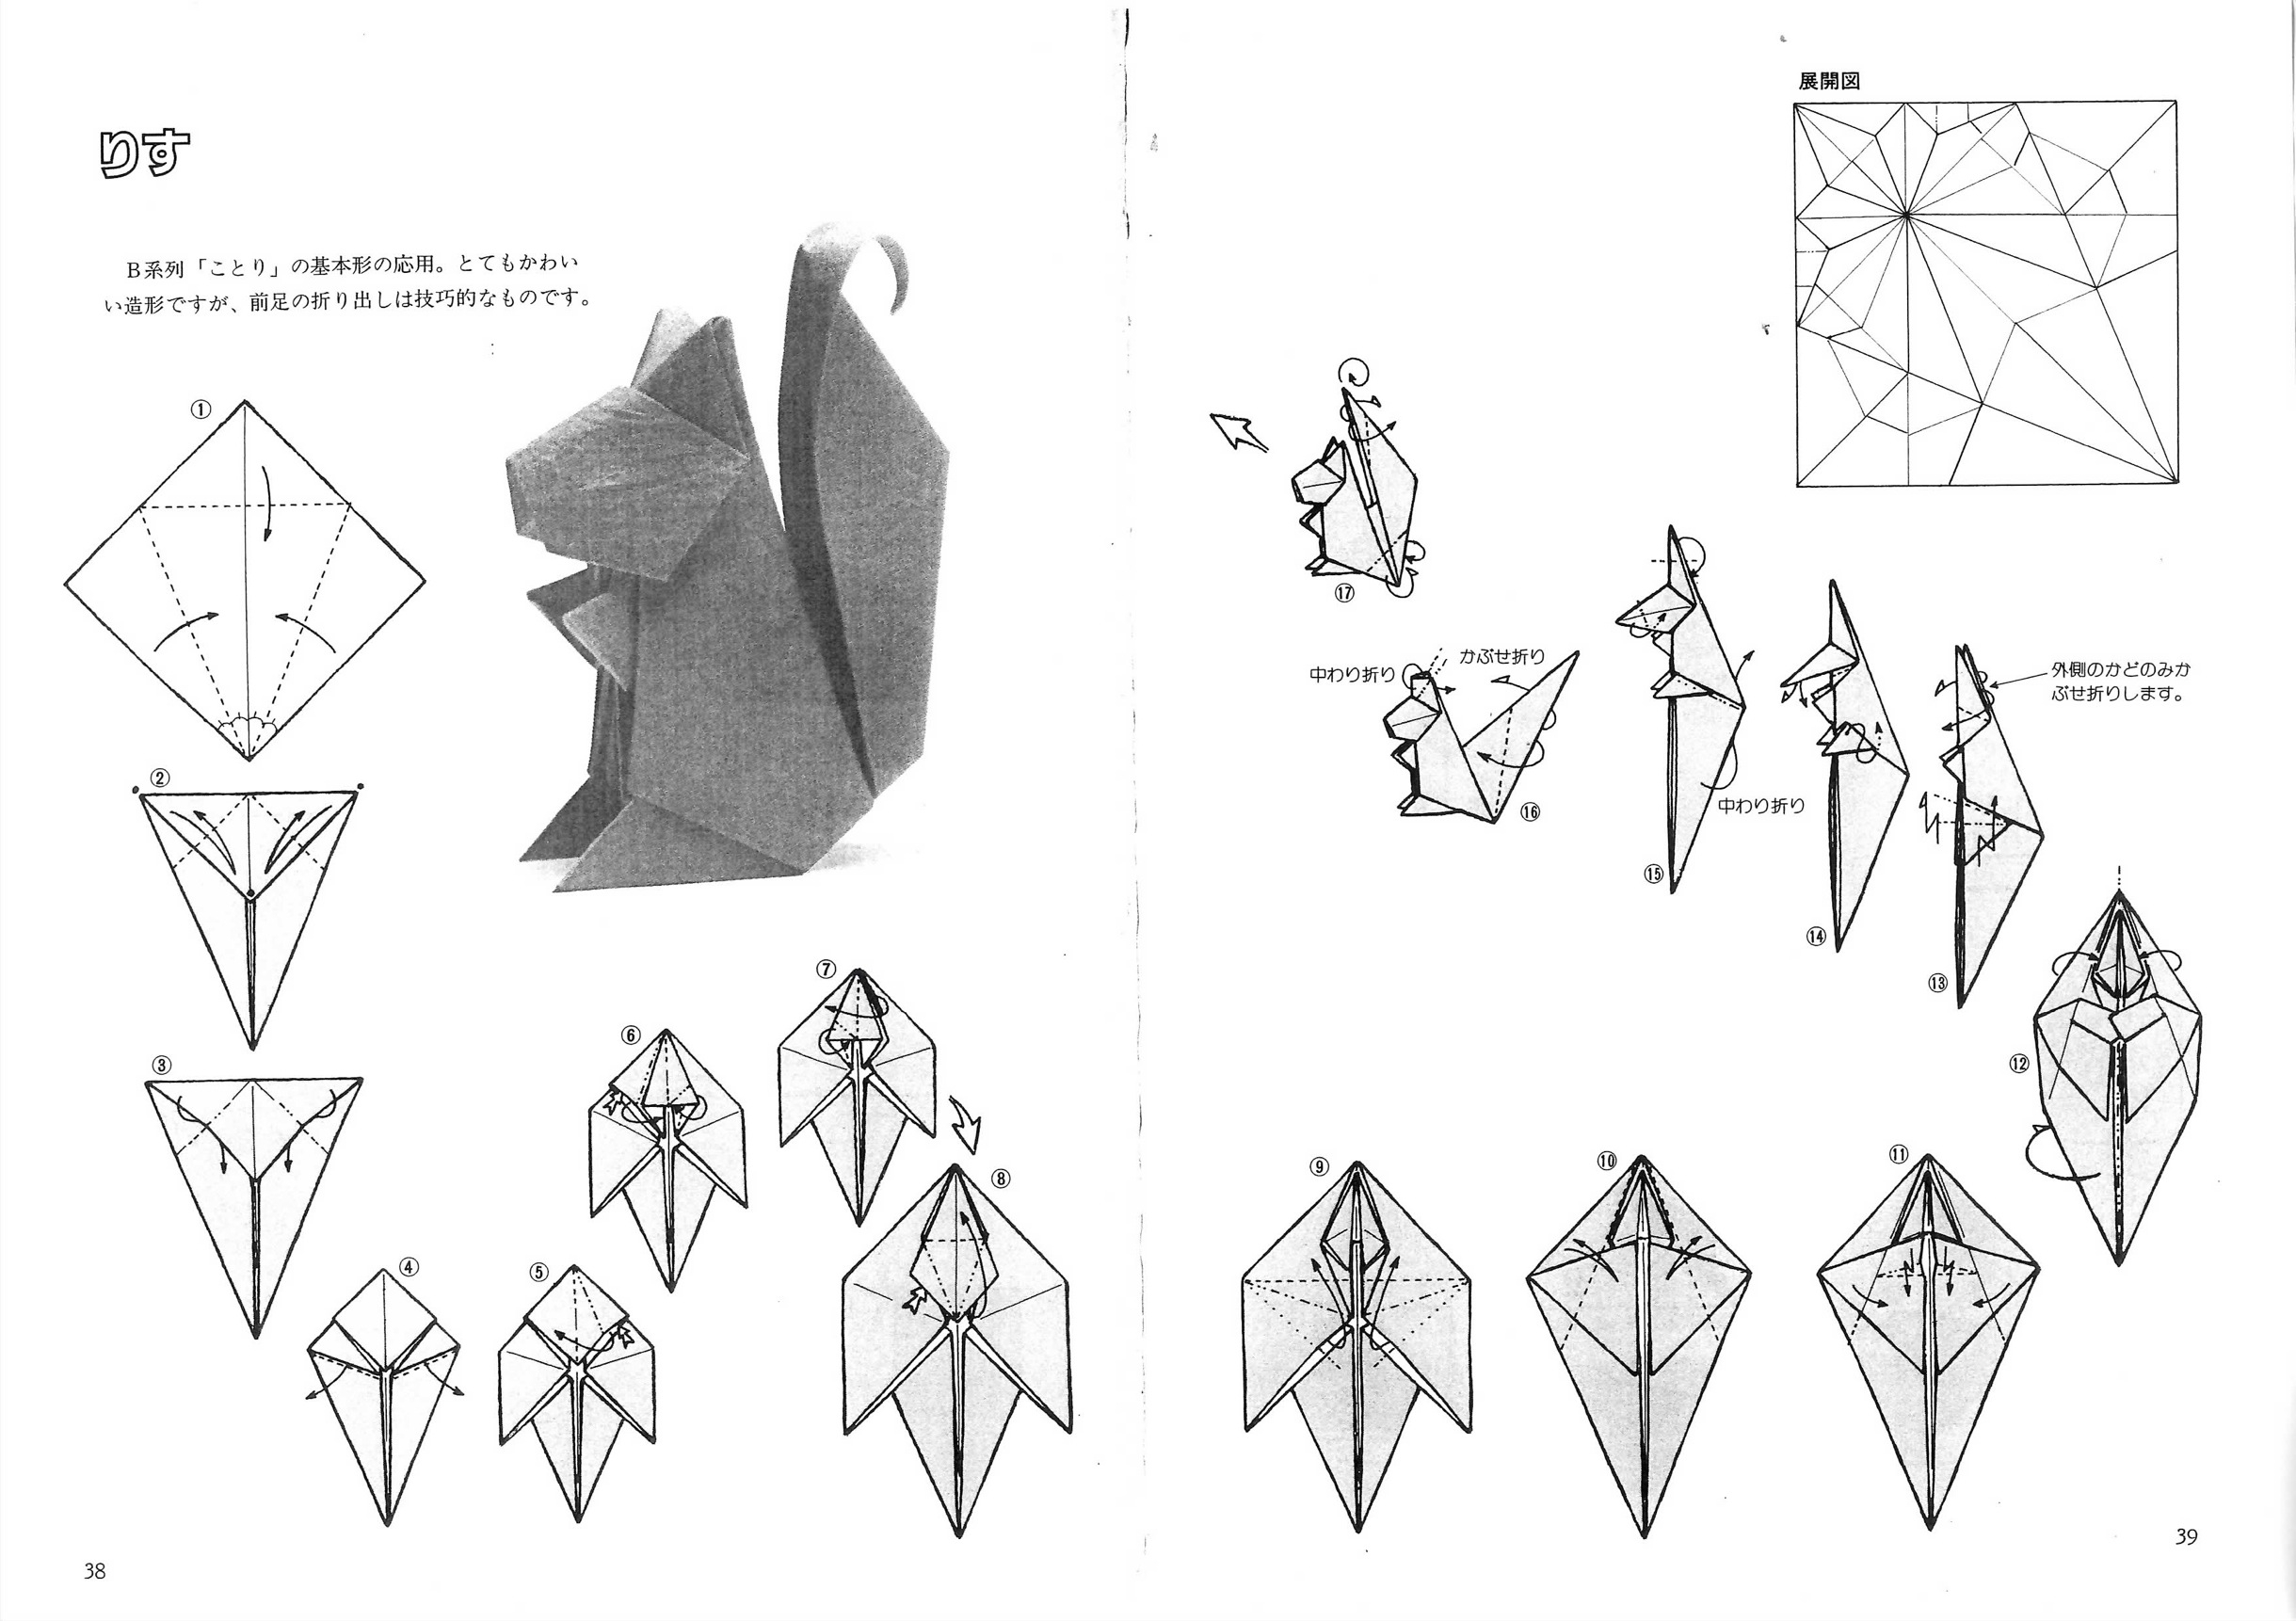 Origami Animals Instructions Origami Origami Animals Instruction How To Make An Origami